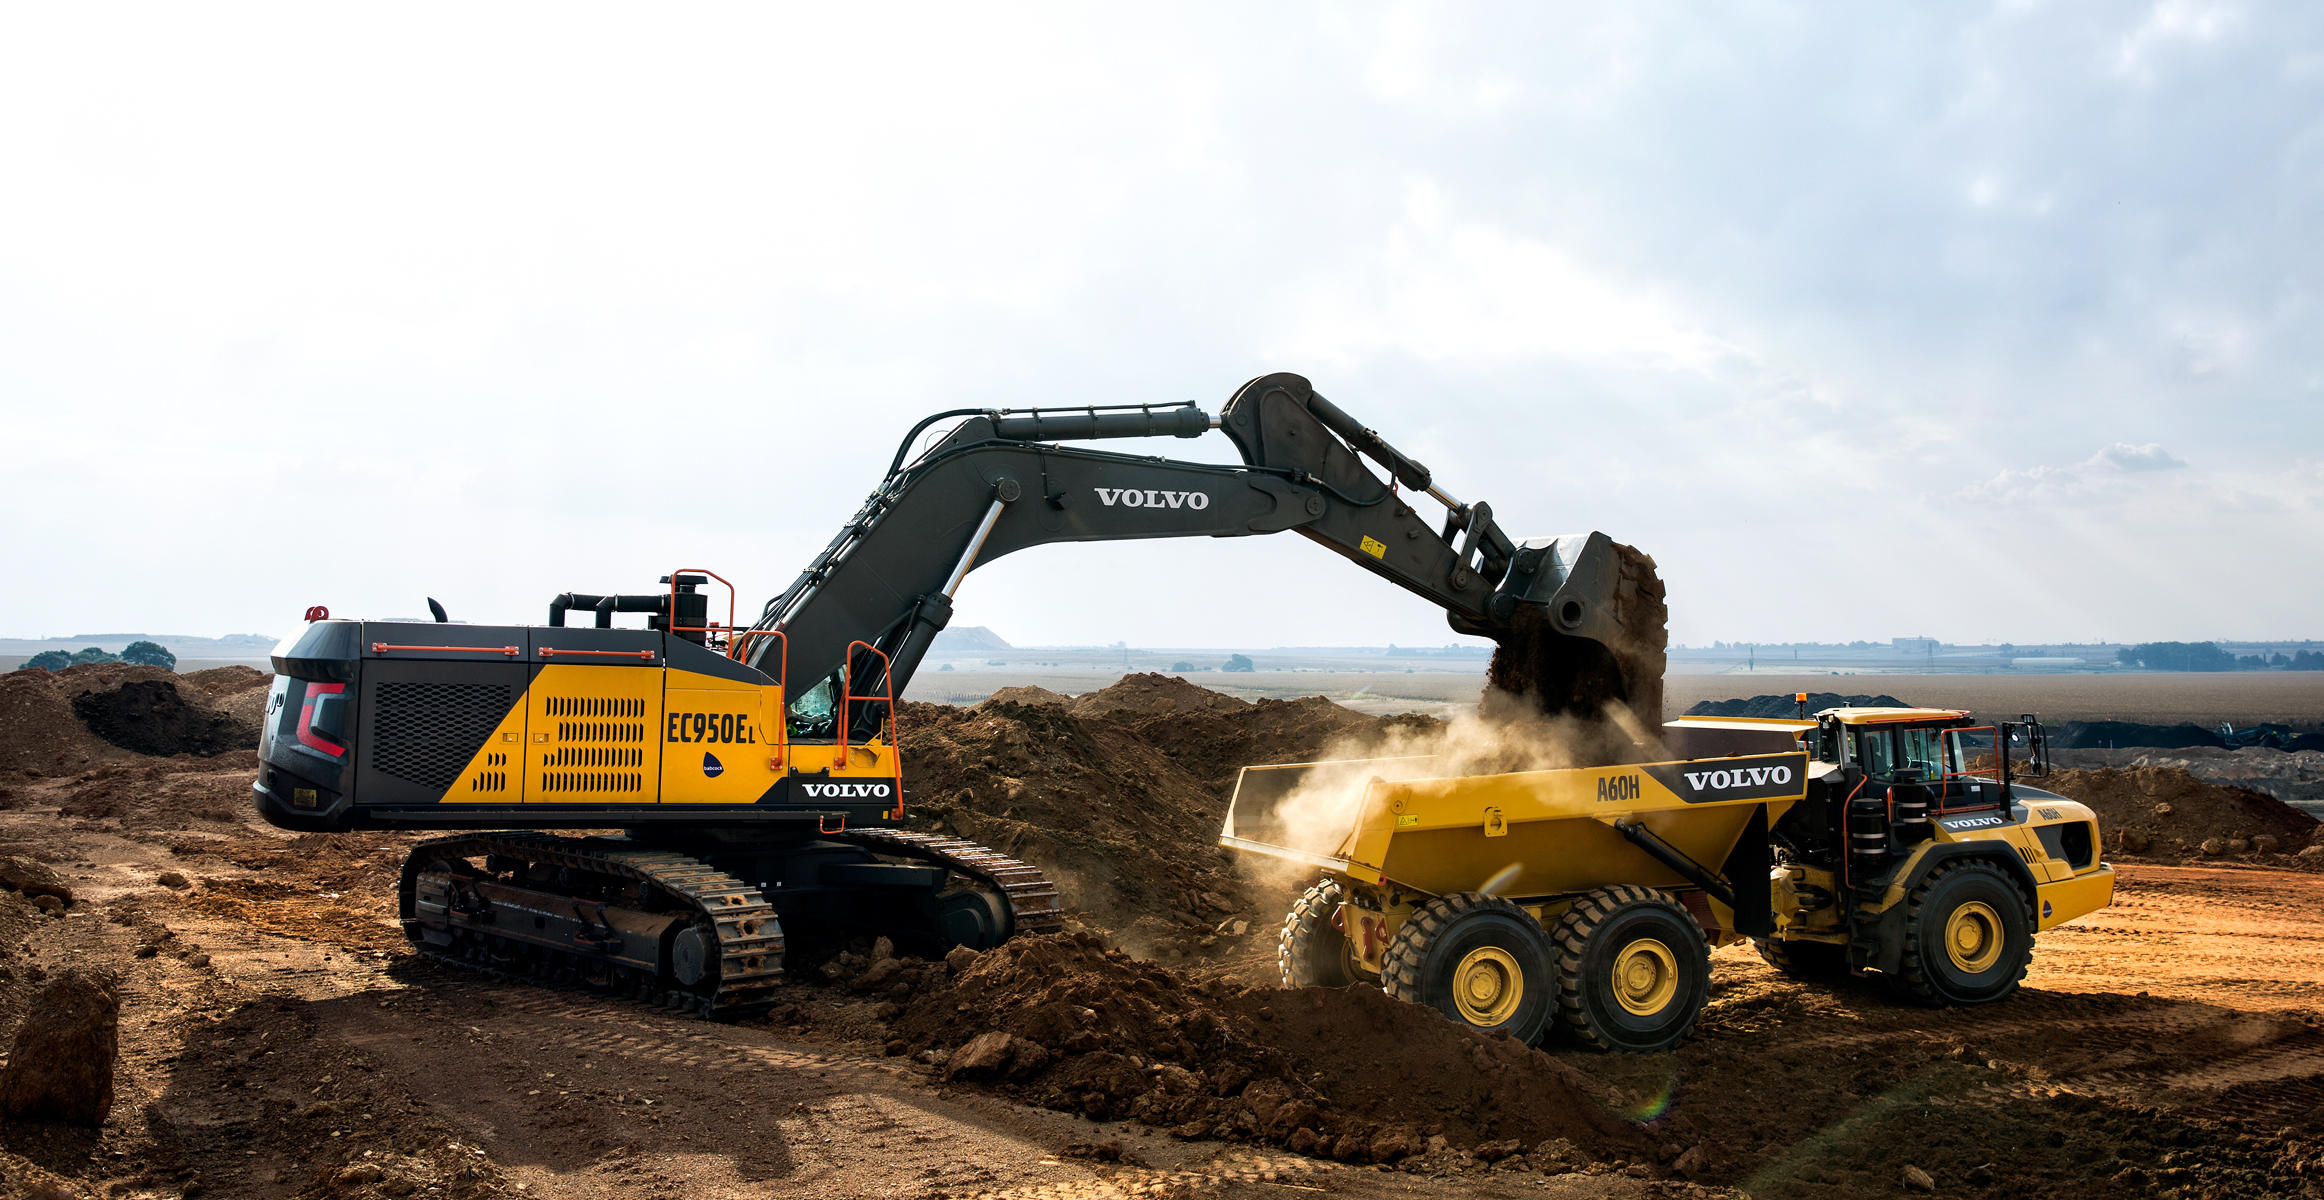 Volvo CE showed off large-capacity mining champions at Mining Indonesia